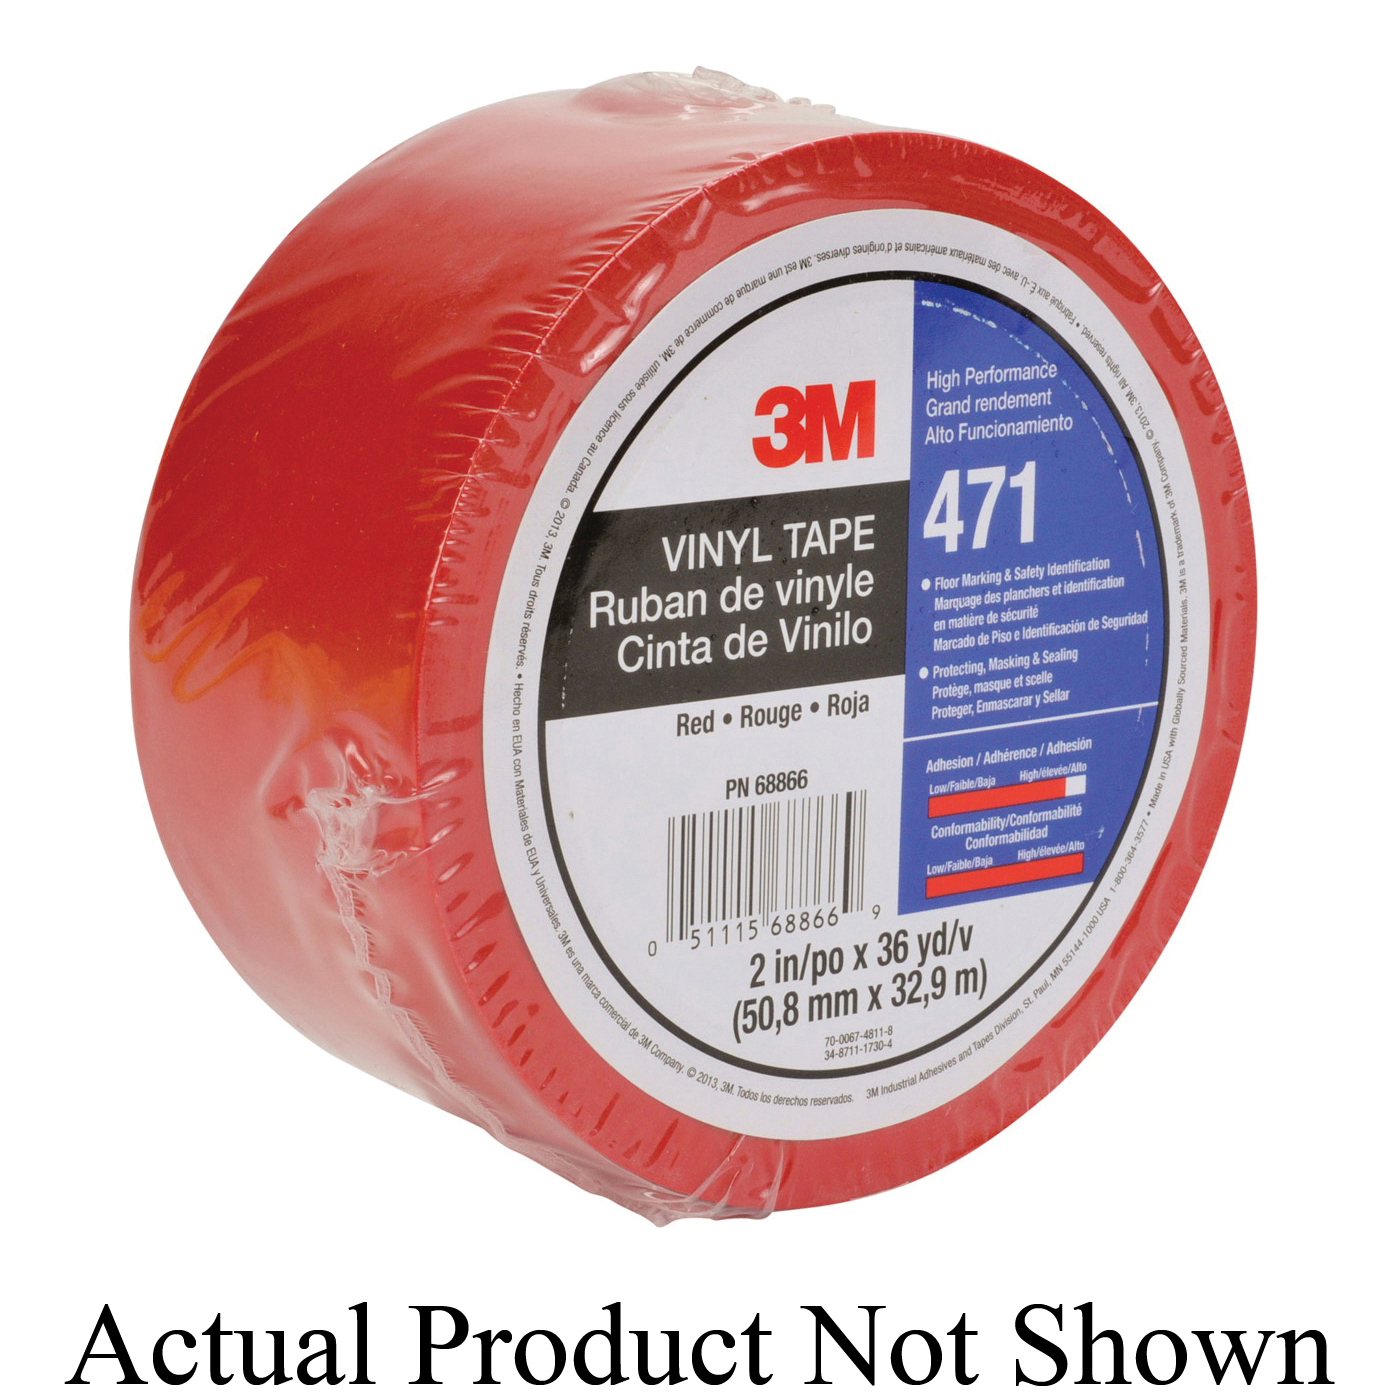 3M™ 021200-07206 High Performance Vinyl Tape, 36 yd L x 1/4 in W, 5.2 mil THK, Rubber Adhesive, Vinyl Backing, Red